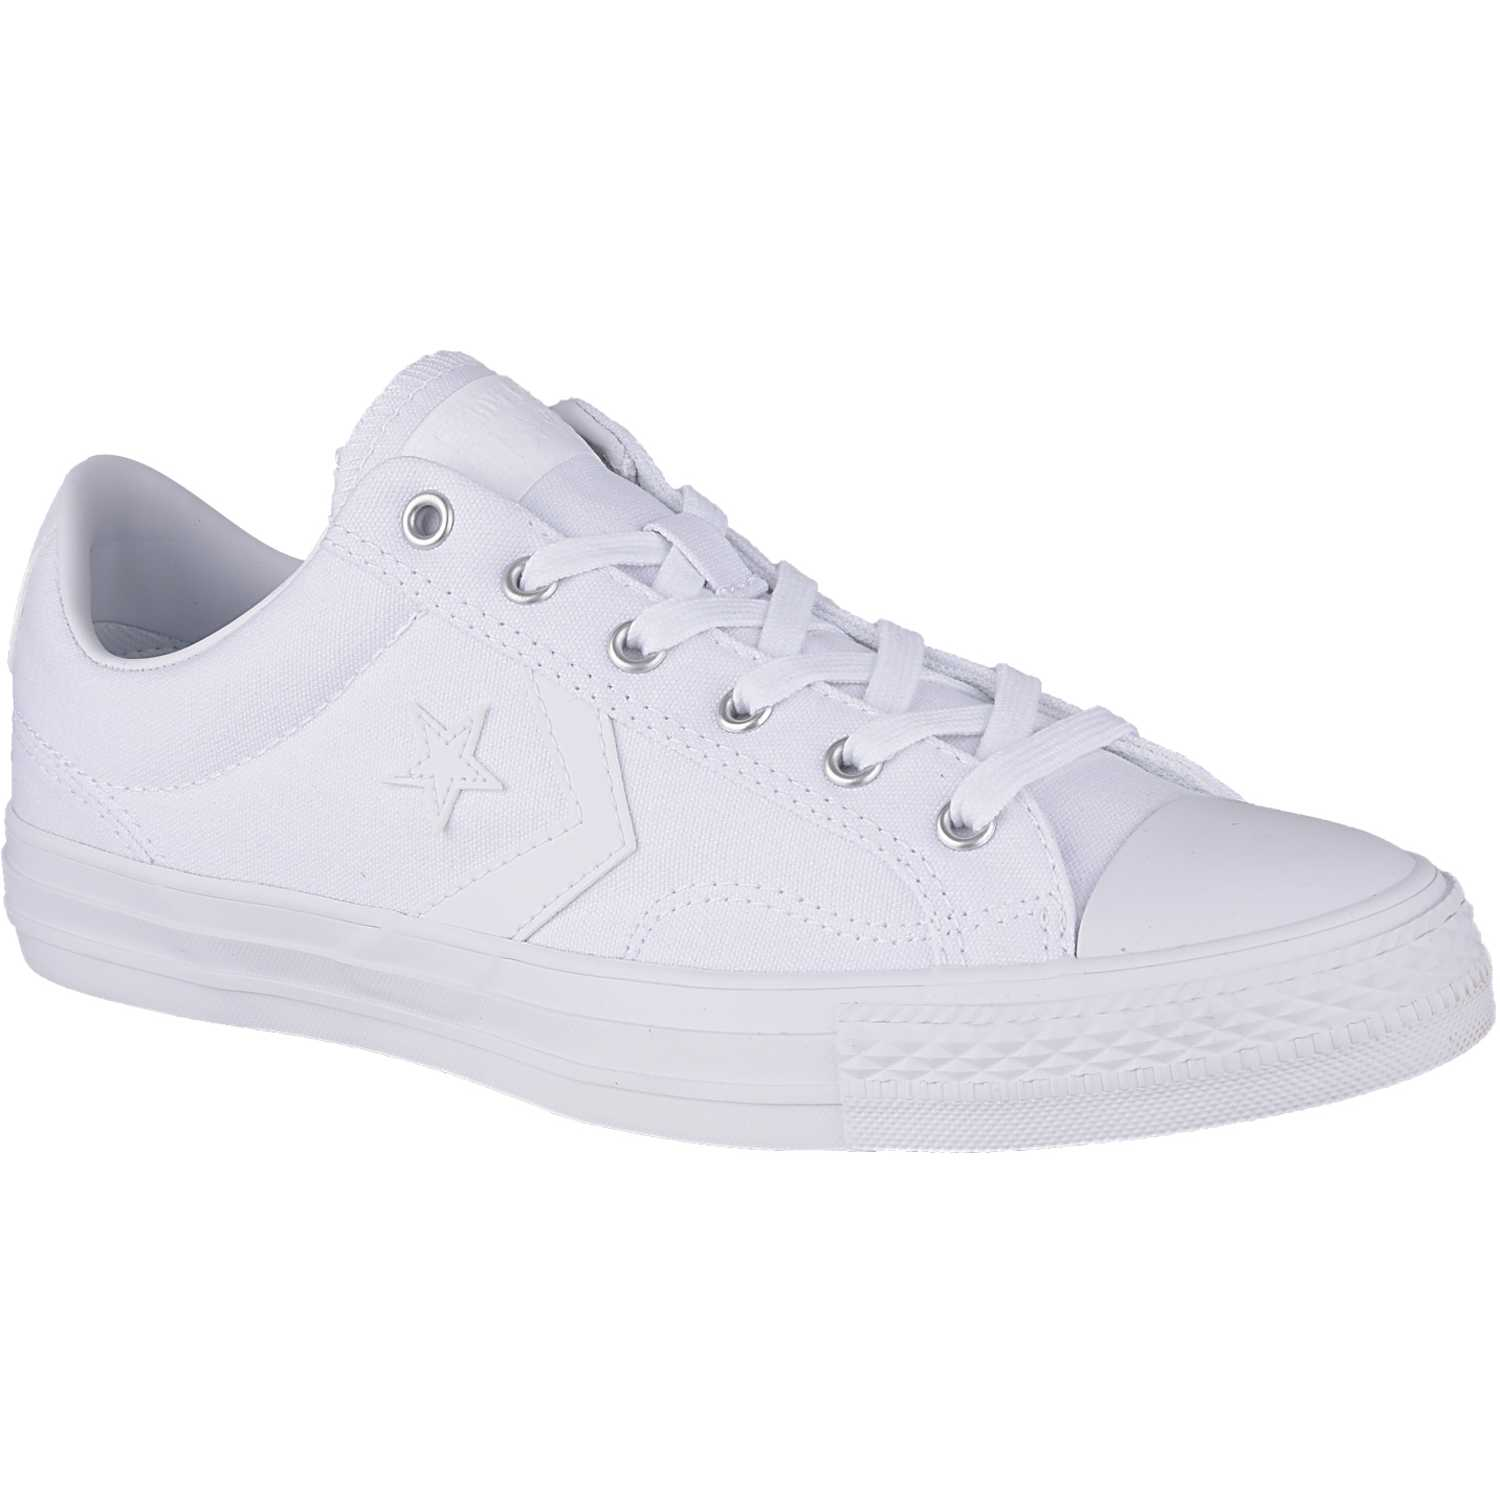 5e233398 Zapatilla de Hombre Converse Blanco star player canvas | platanitos.com